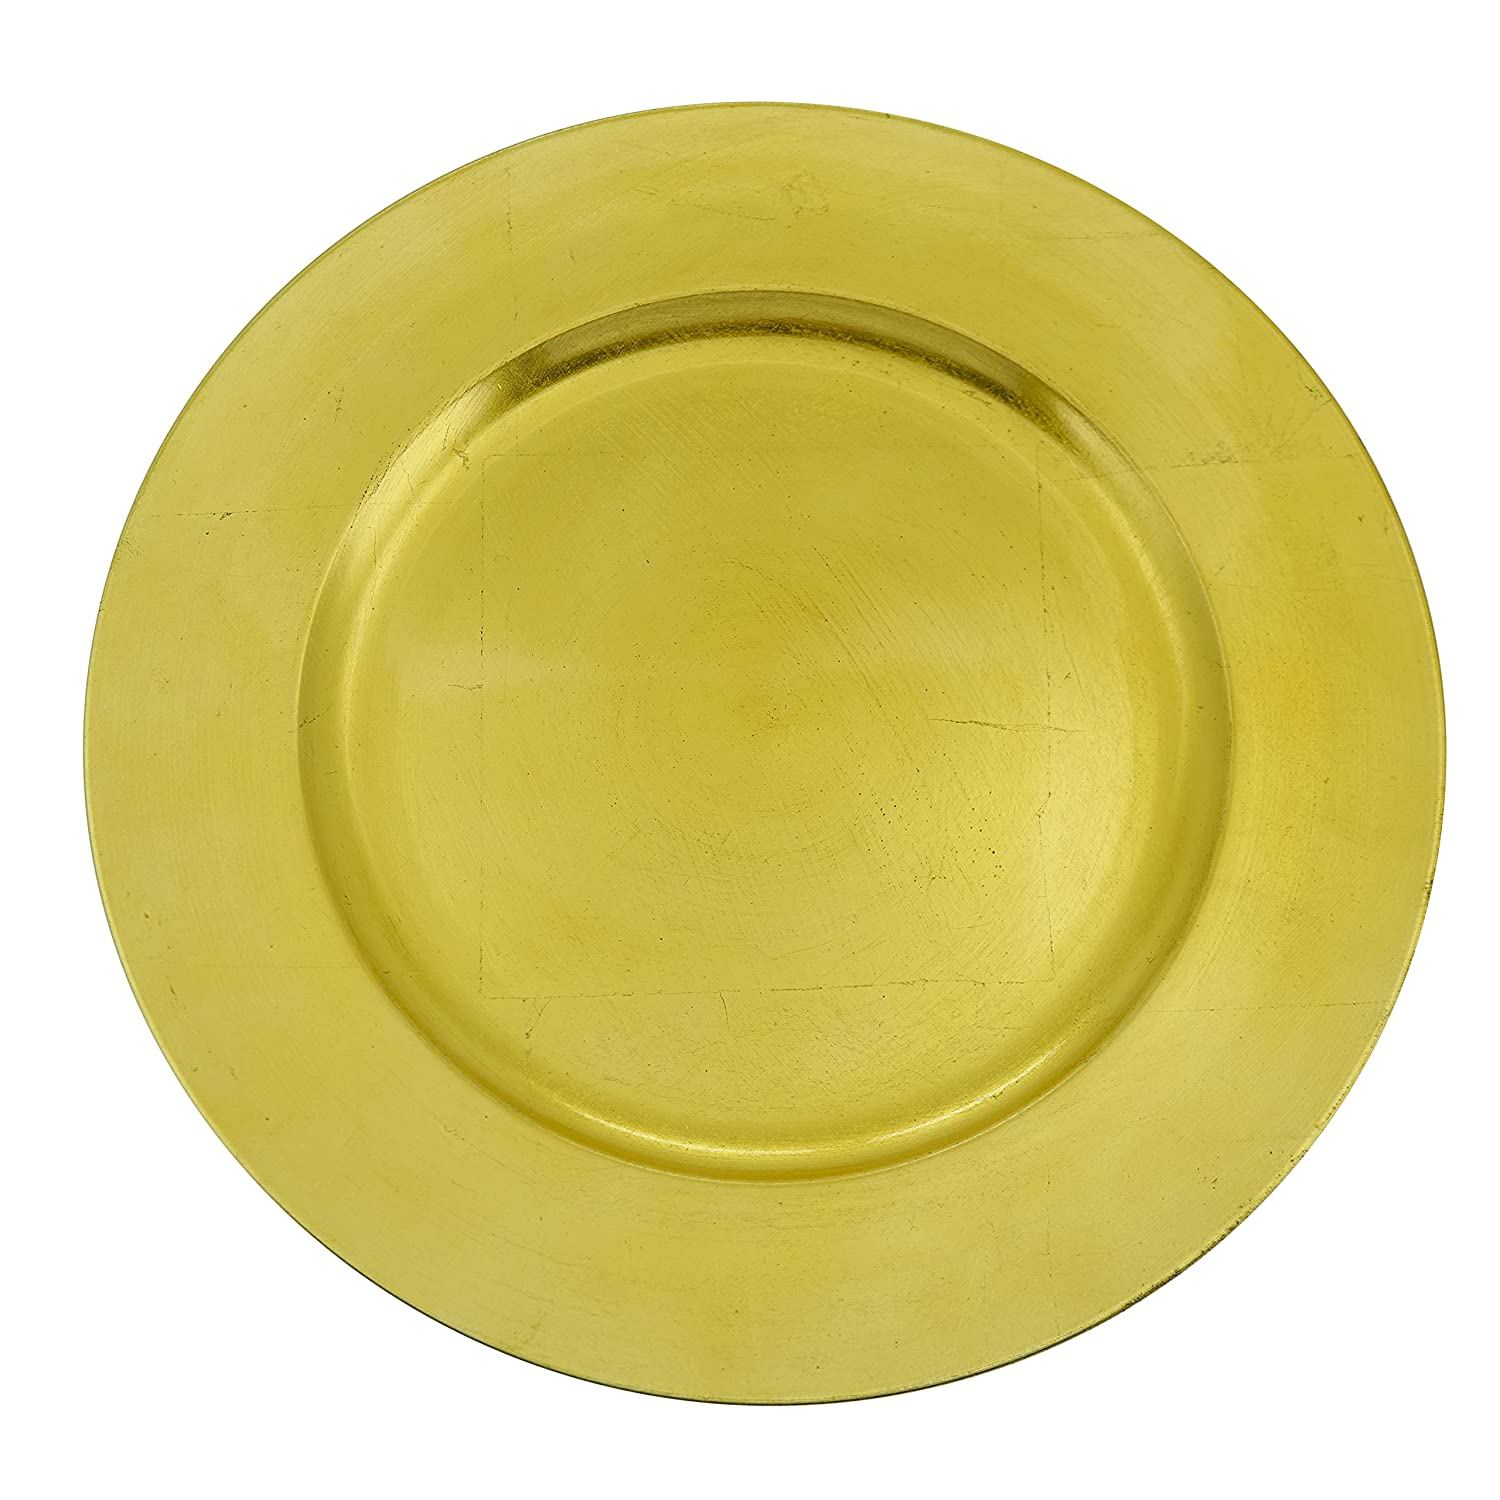 SARO LIFESTYLE CH001.CS13R Classic Design Charger Plate, Chartreuse, 13